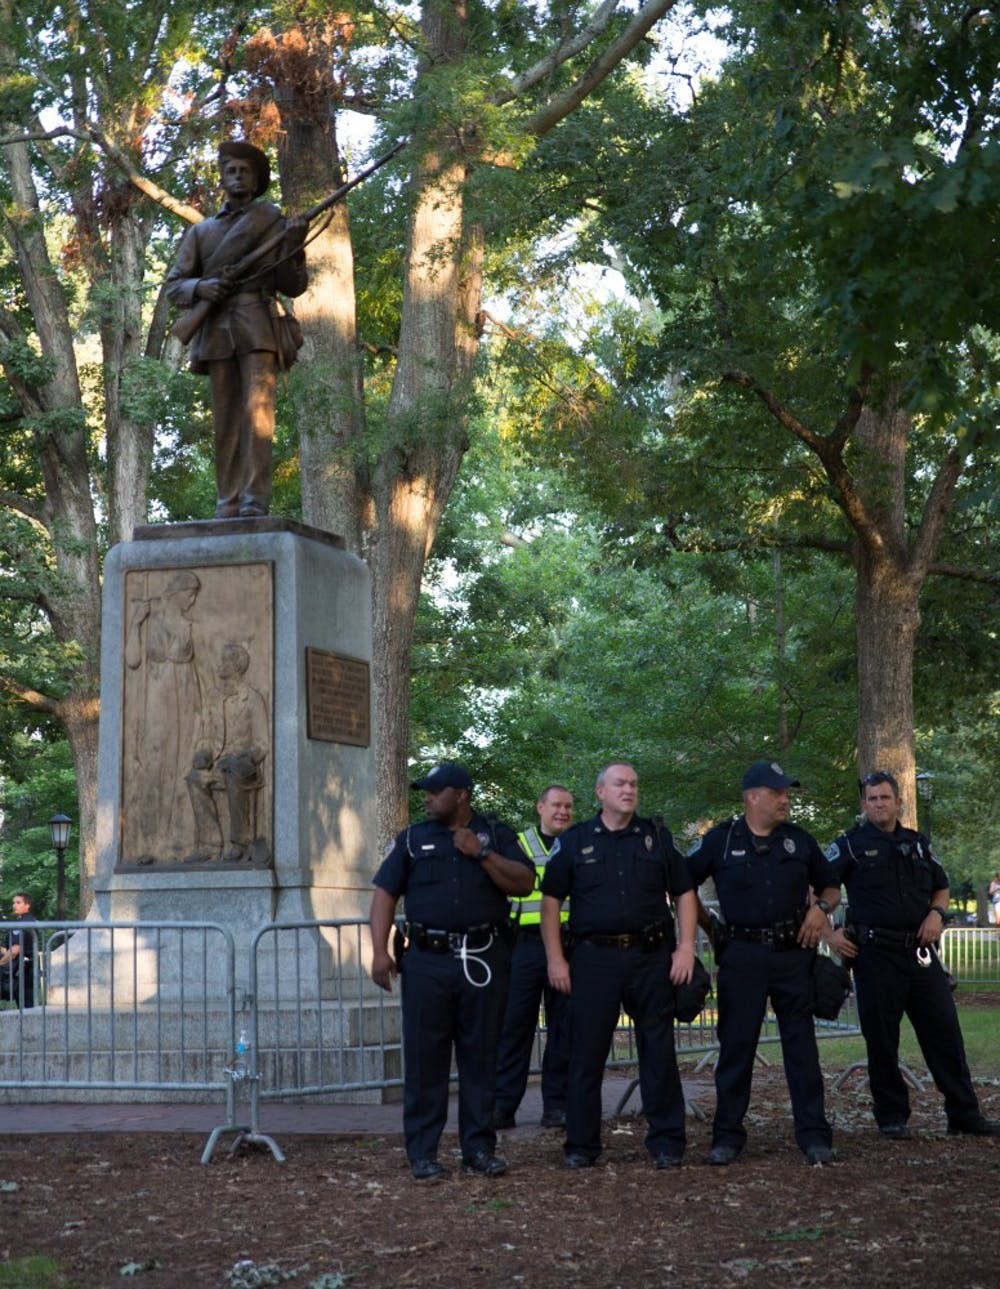 Legal issues complicate Silent Sam's removal